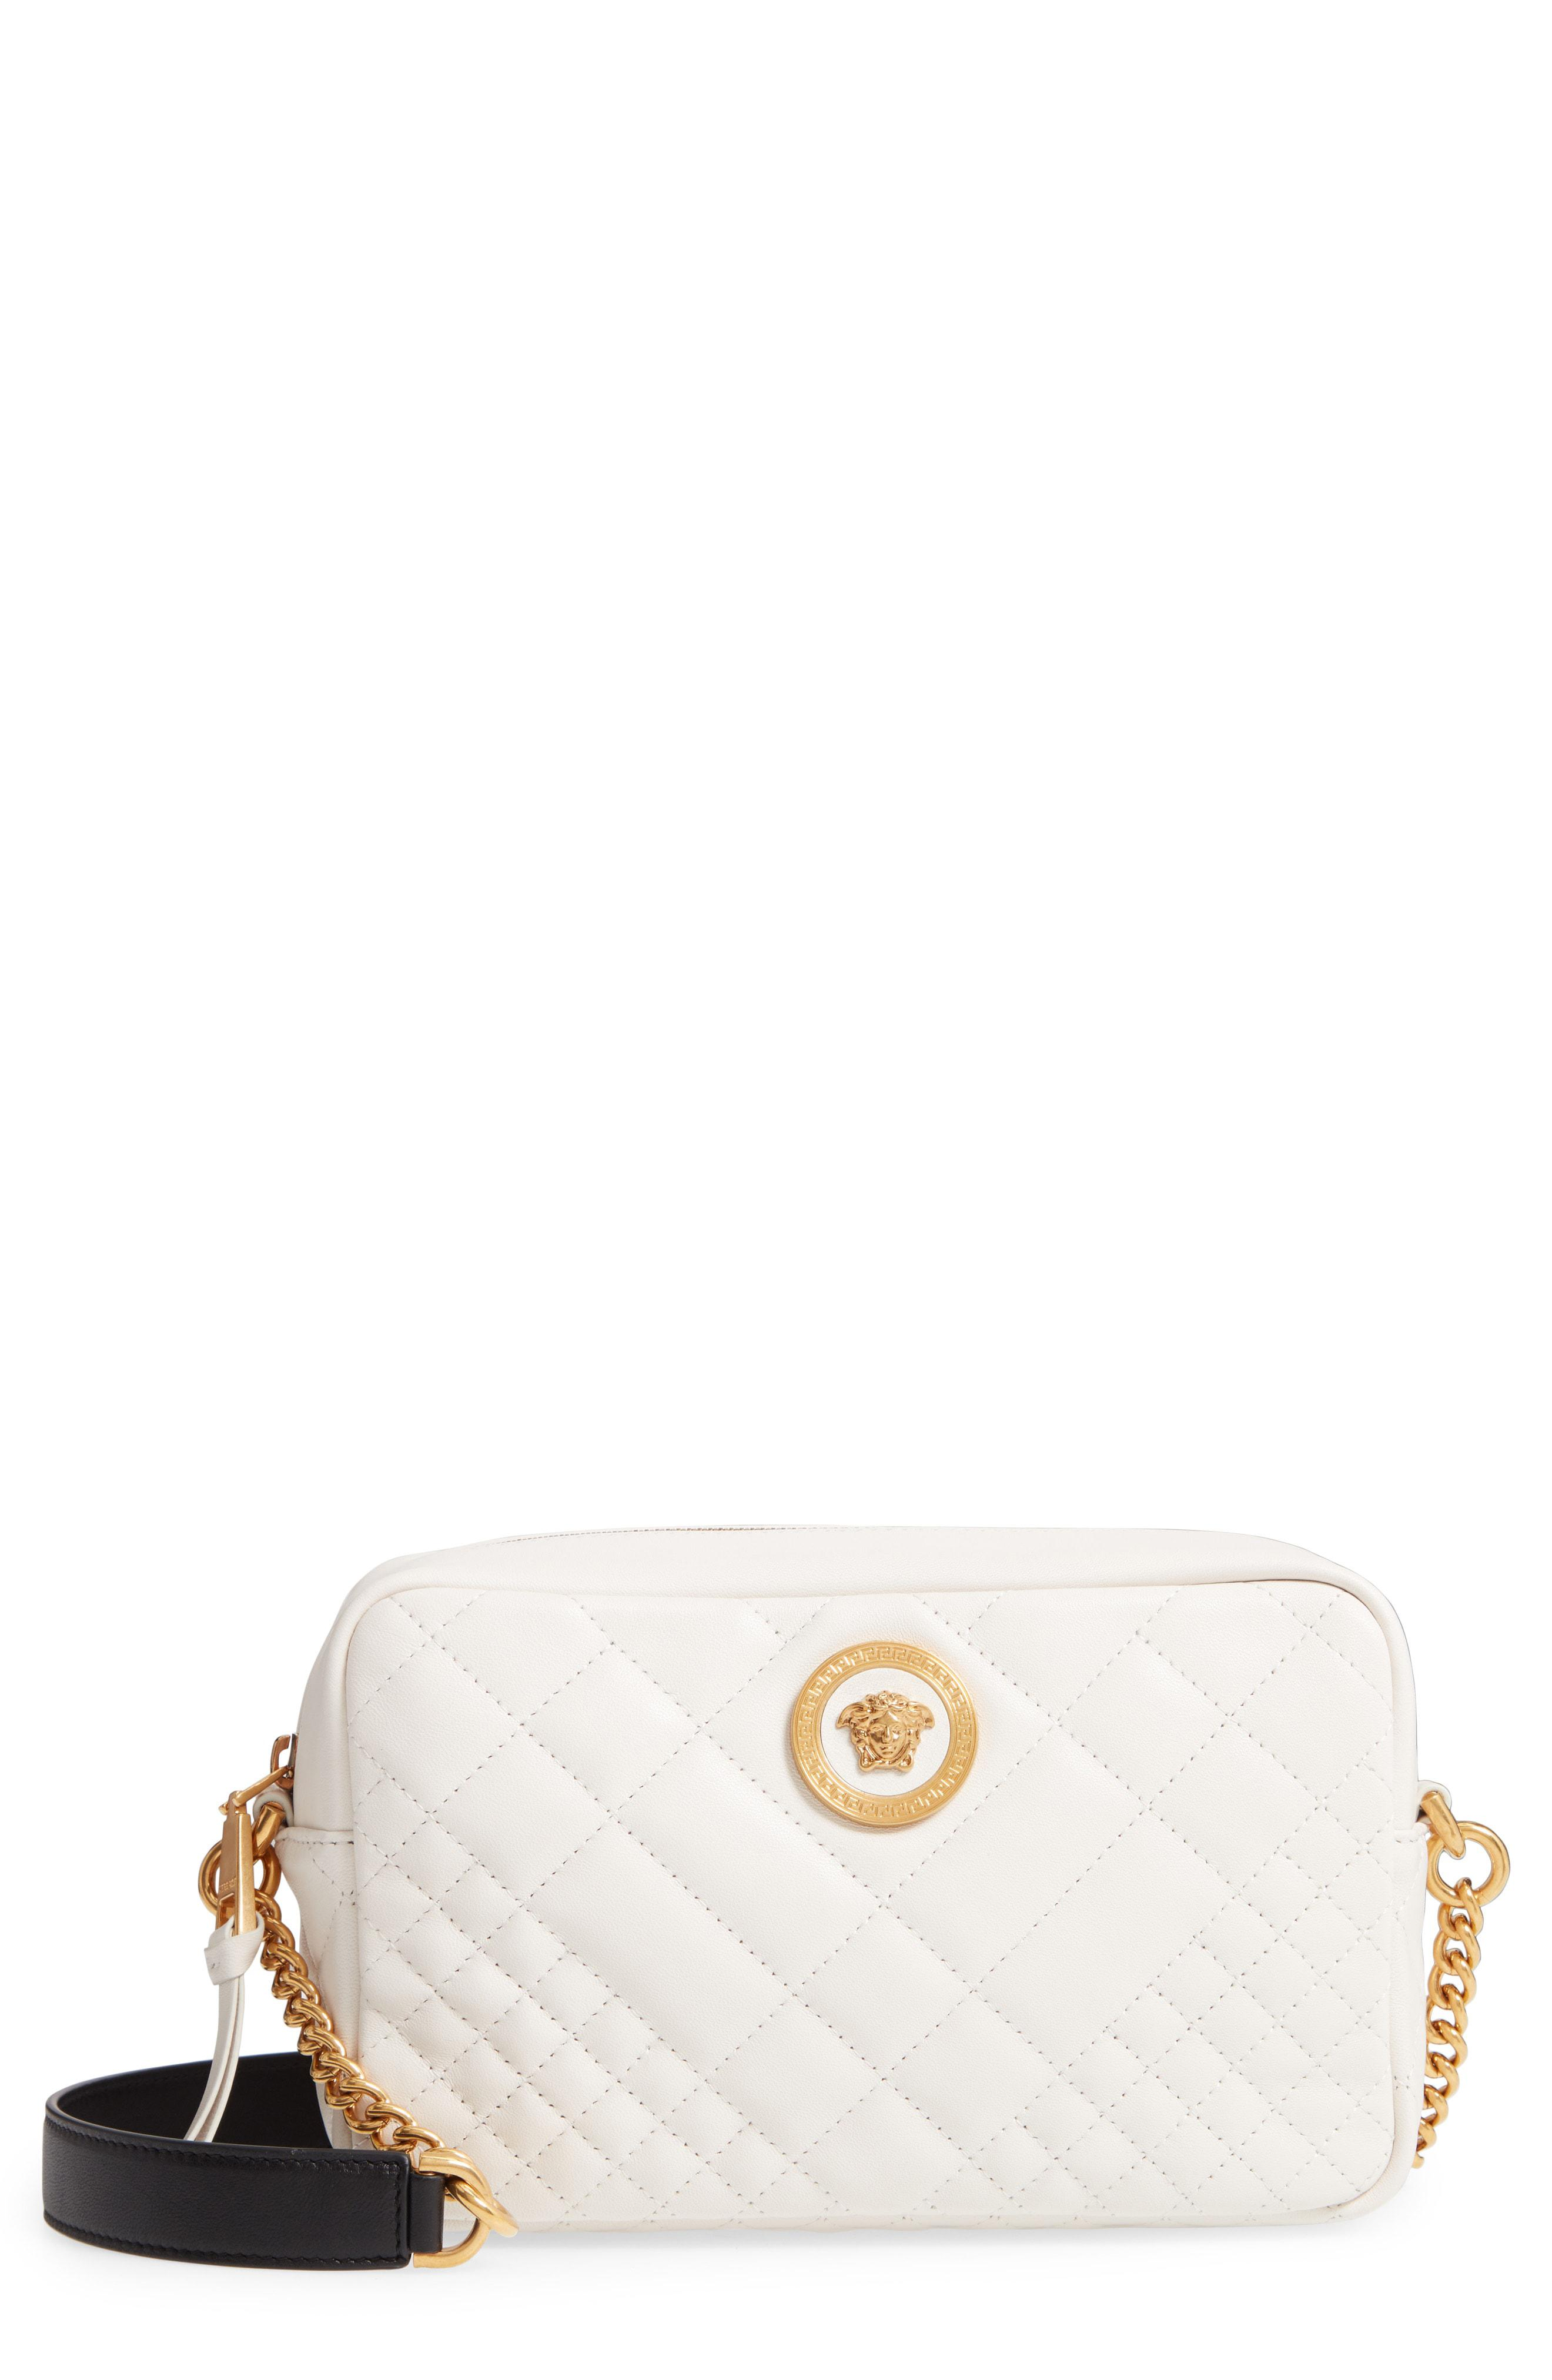 7c06a87cc2 Versace. Women s Tribute Quilted Leather Camera Bag -